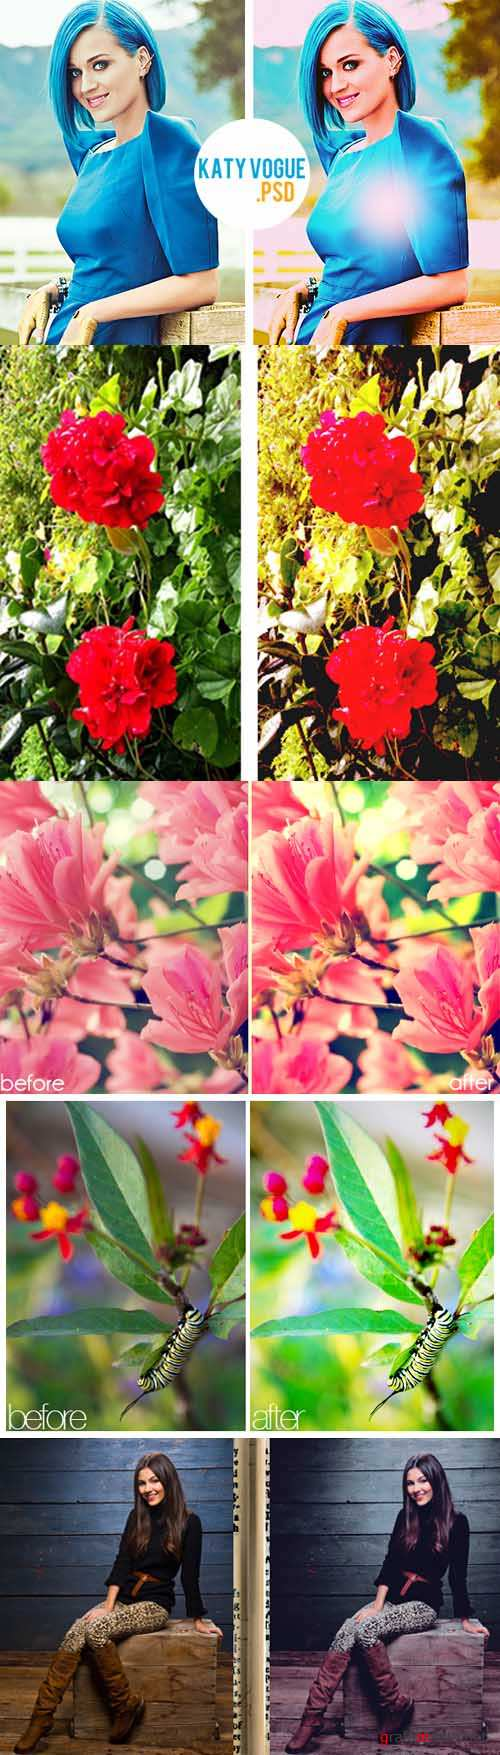 Cool Photoshop Action 2012 pack 436